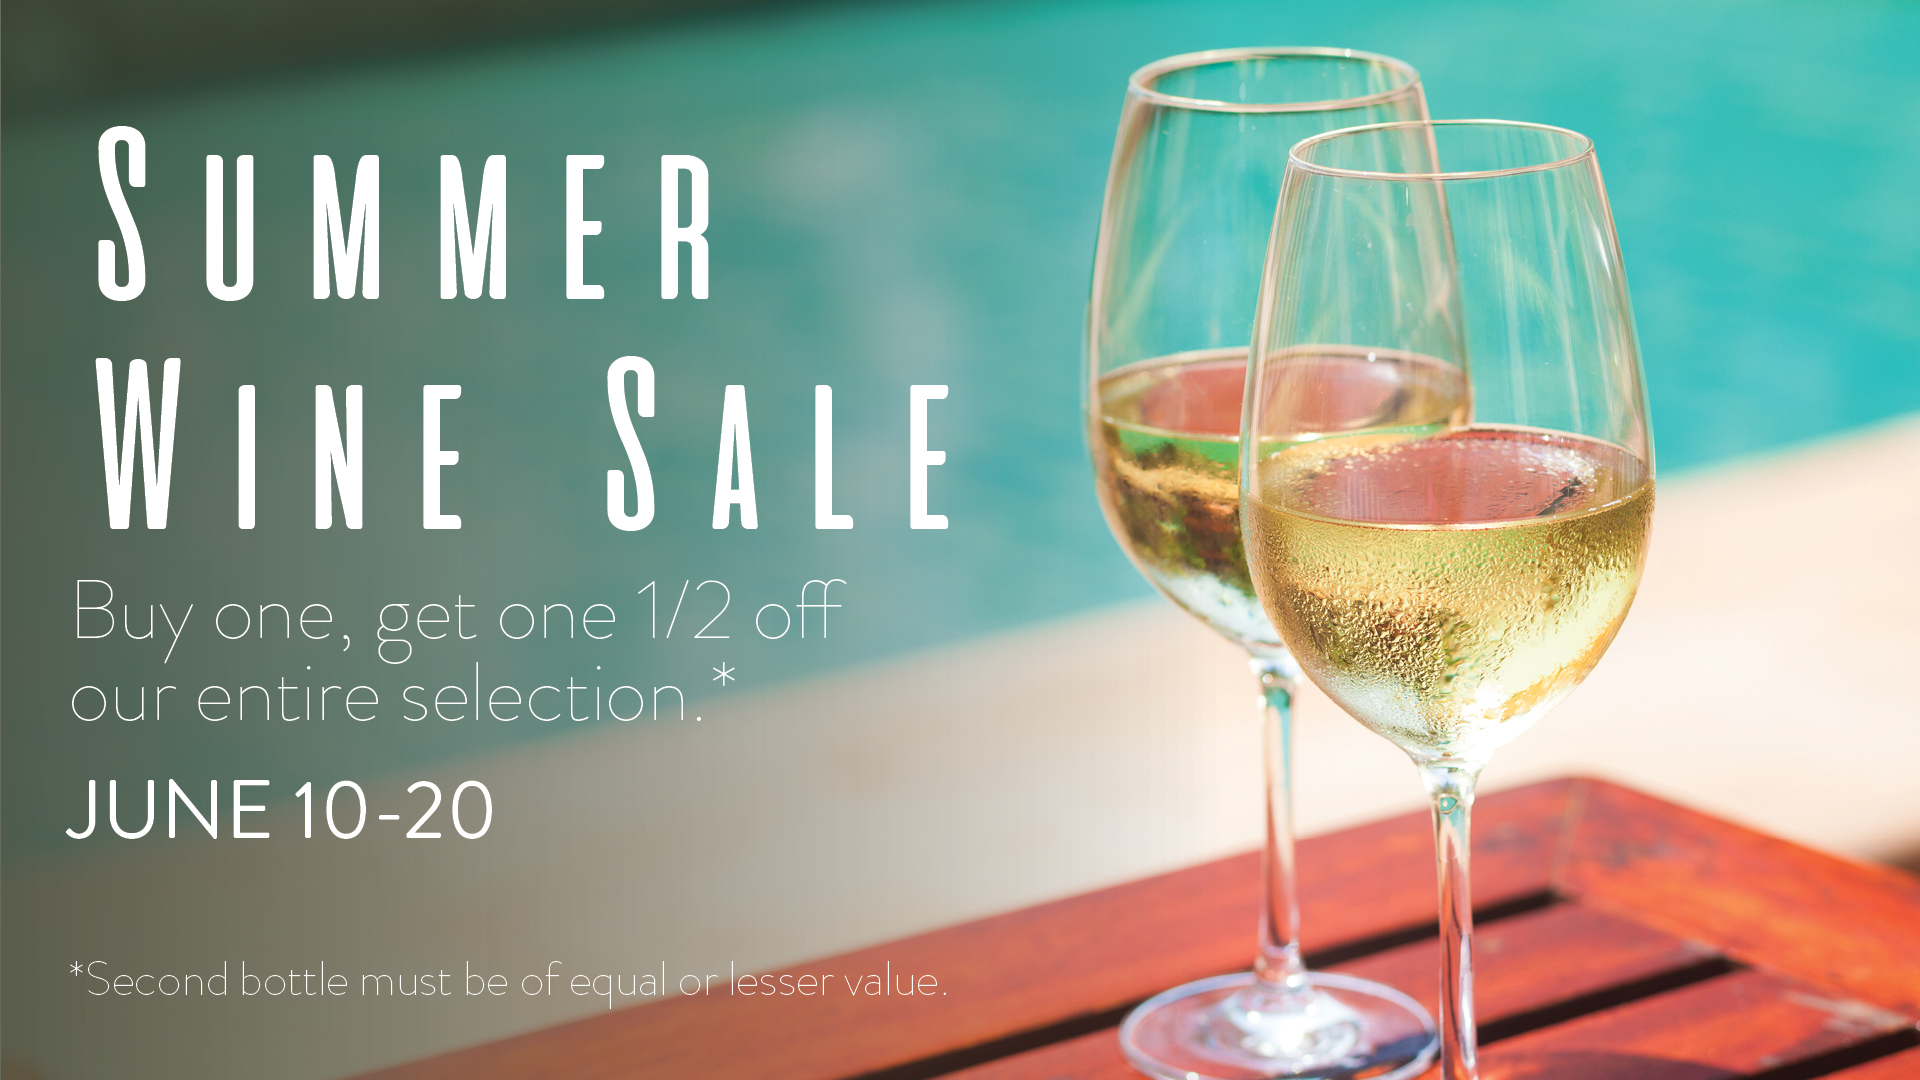 June 10 - 20: BUY ONE, GET ONE 1/2 OFF!